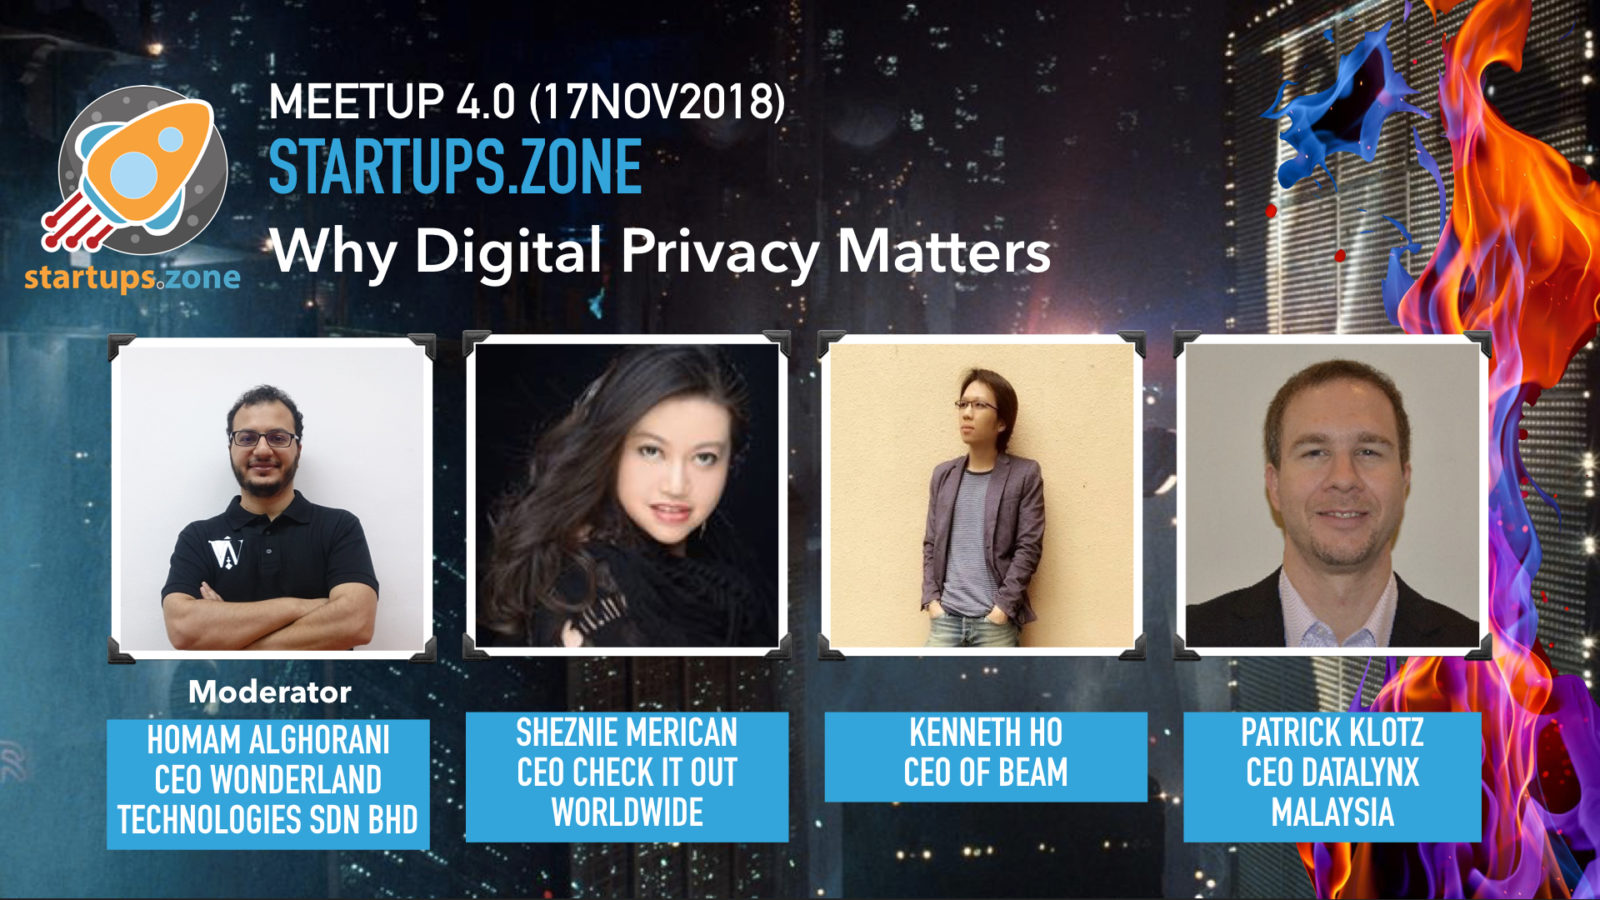 startups.zone-meetup-4.010